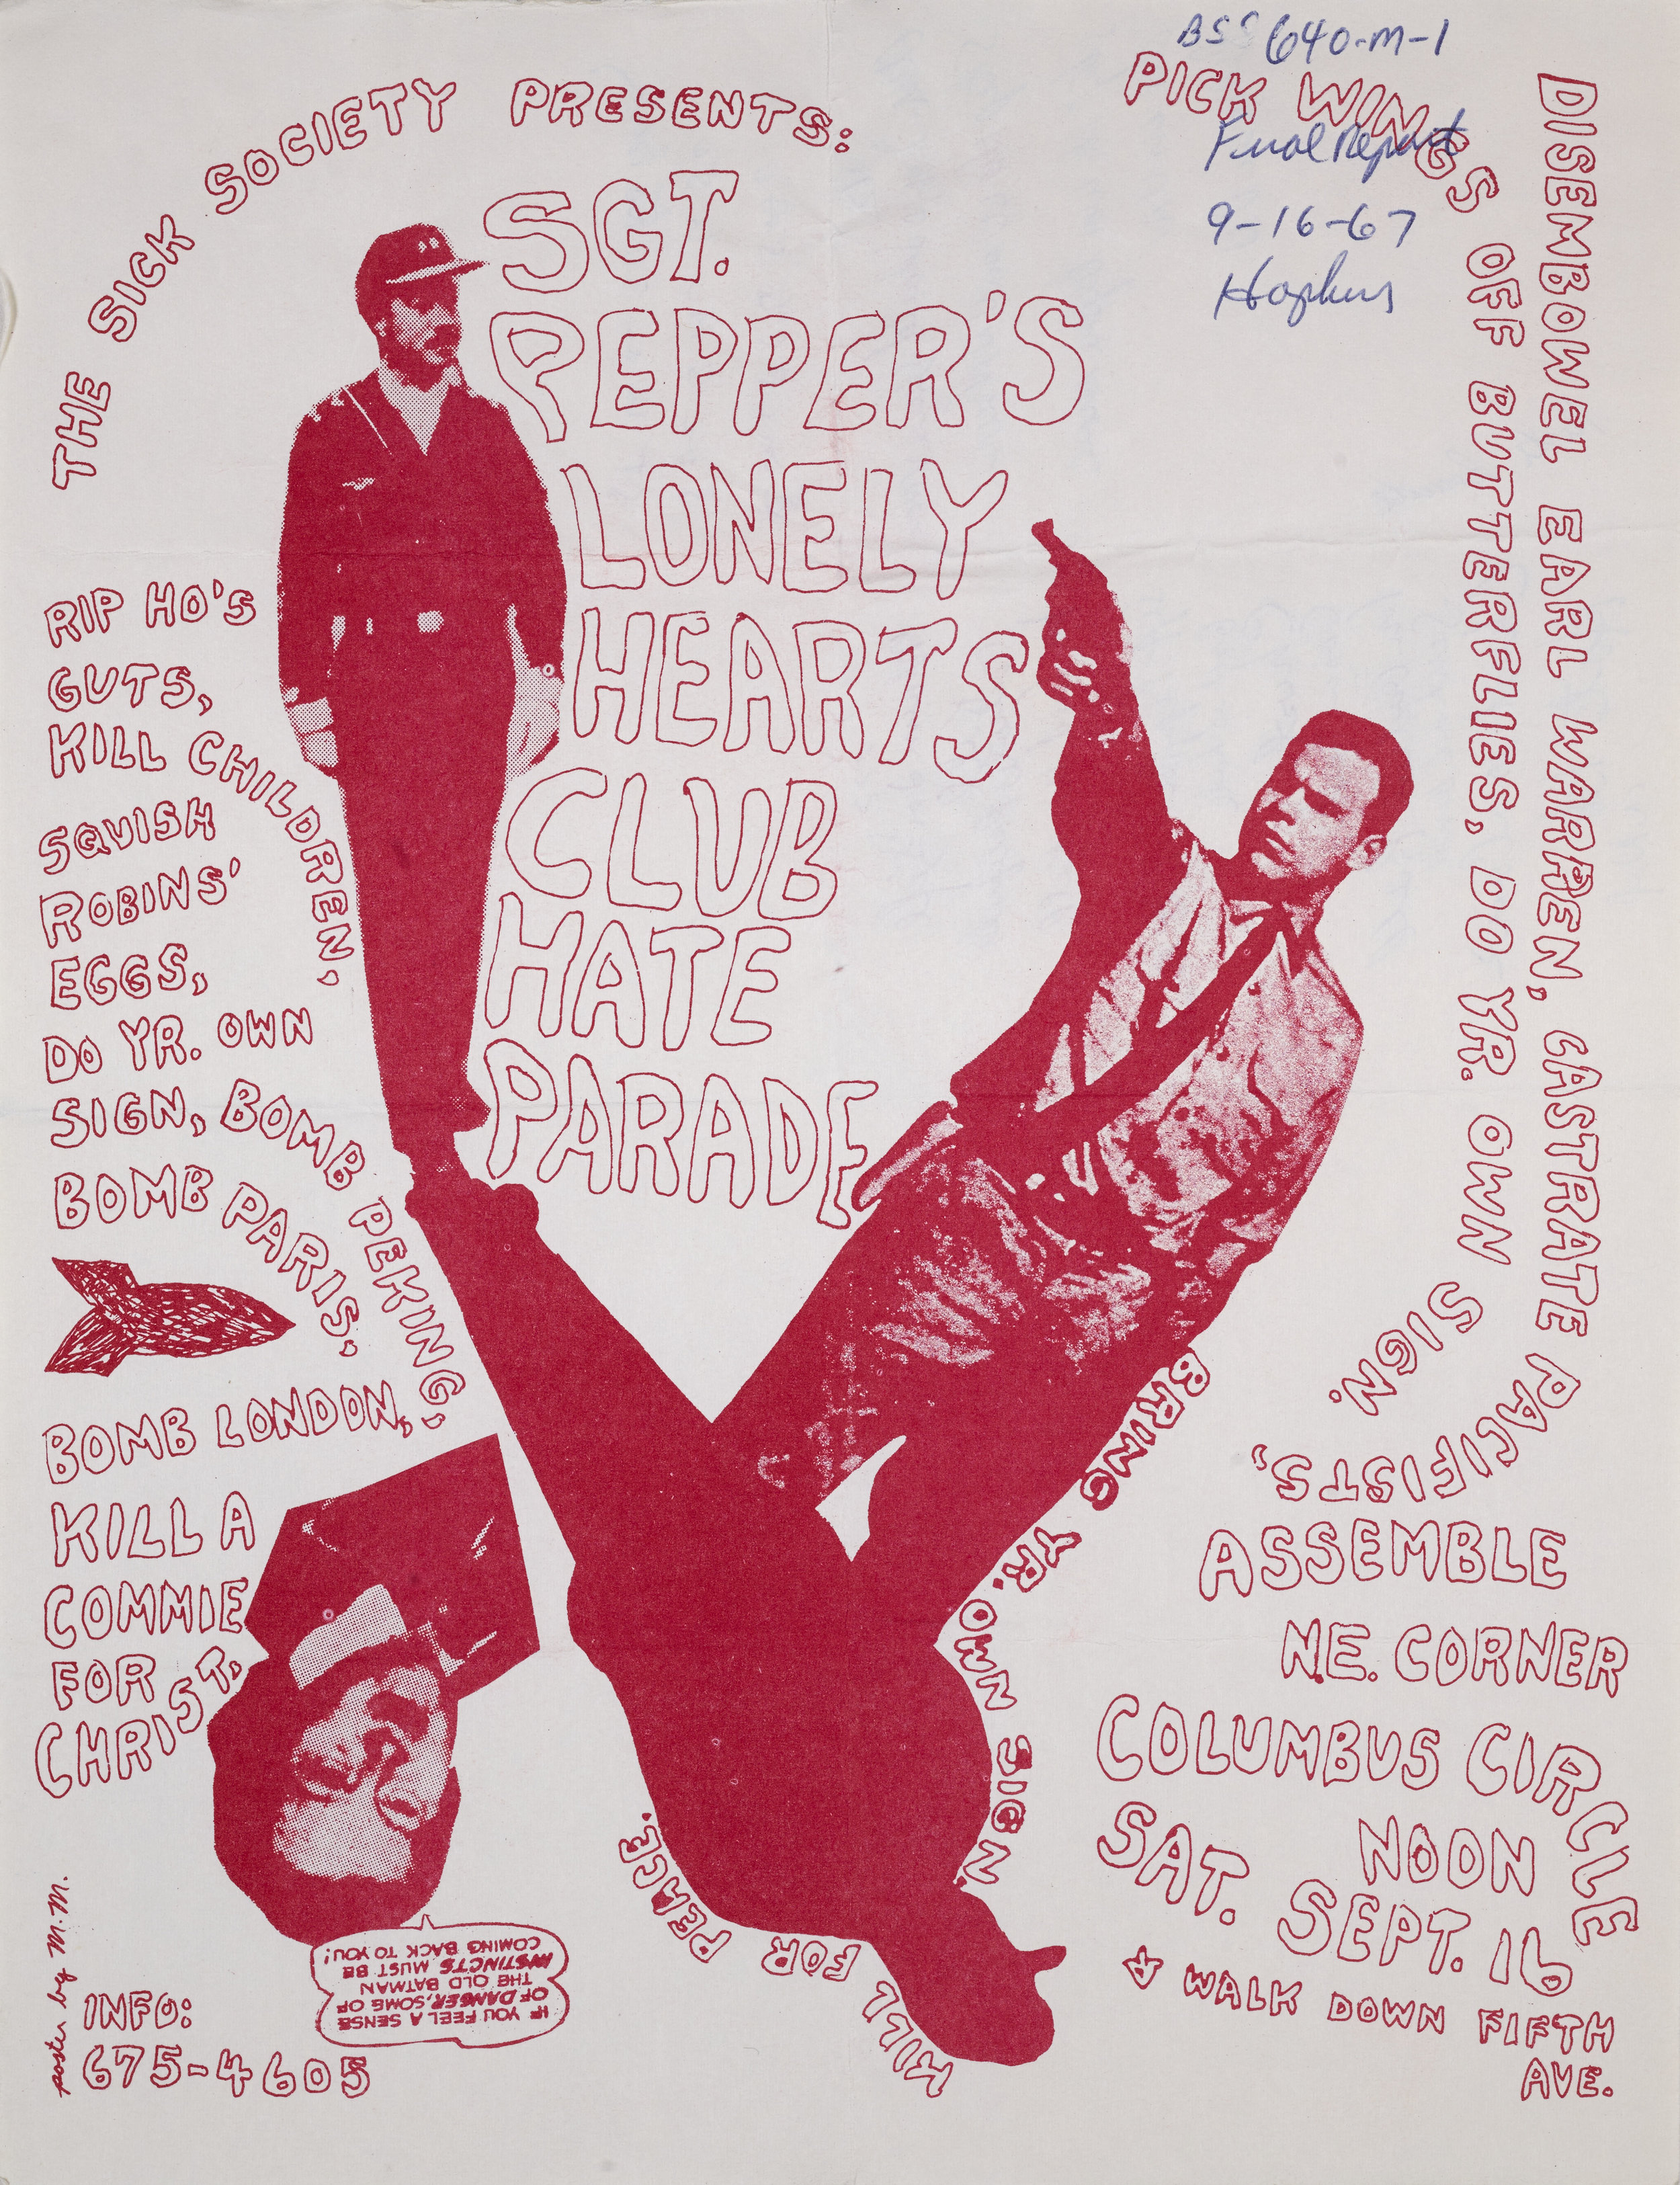 Sgt. Pepper's Lonely Hearts Club Hate Parade Poster, September 19, 1967